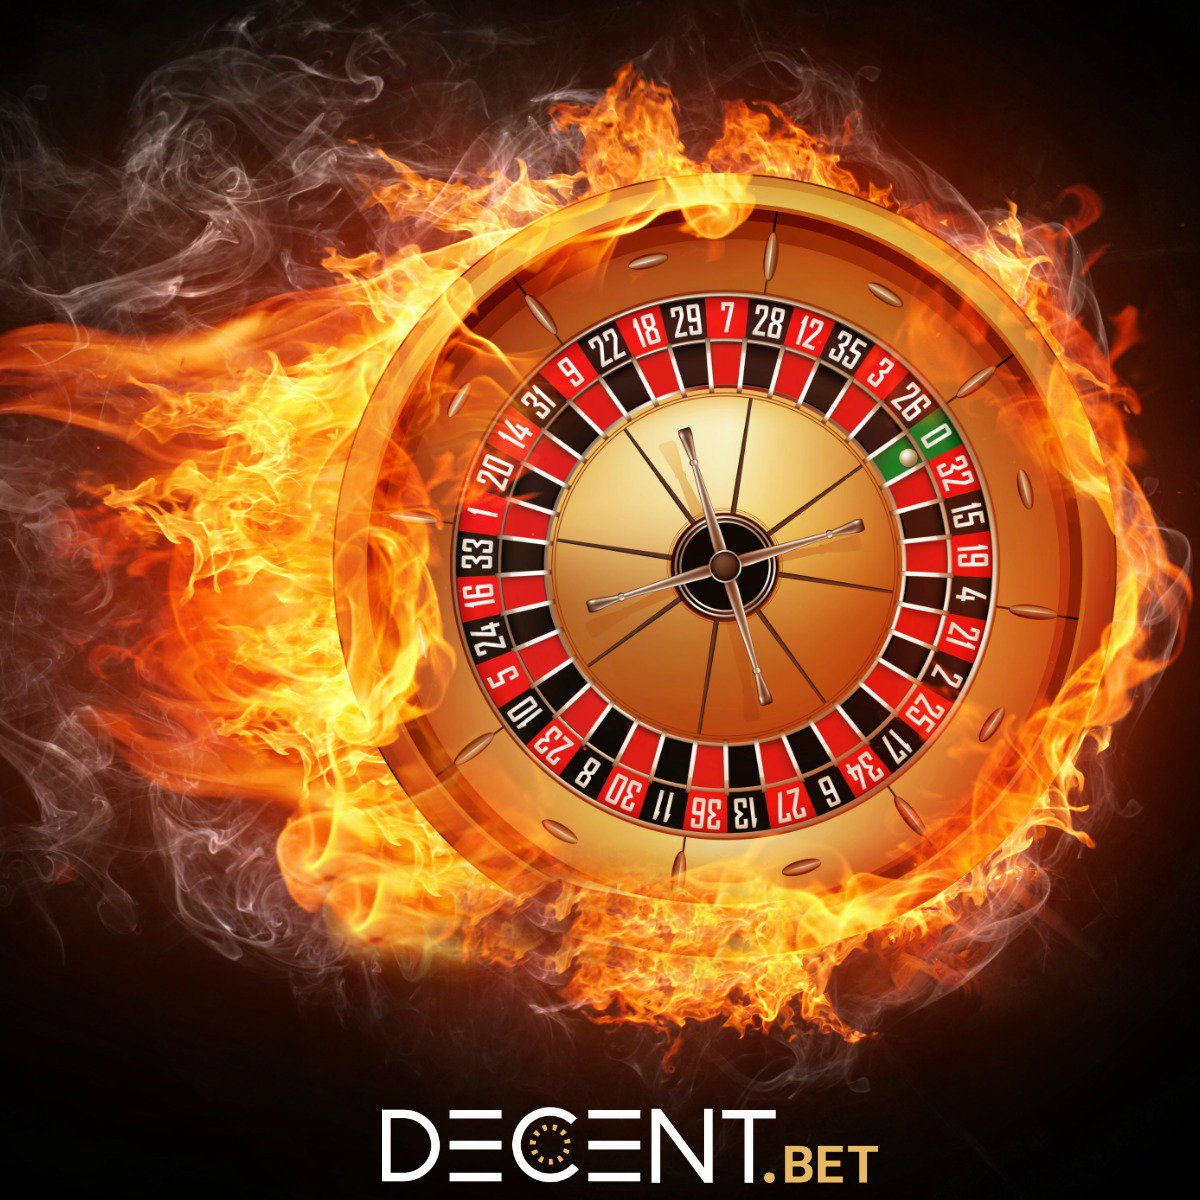 Website and Whitepaper are Live! #Ethereum #CryptoCurrency #Gambling #SportsBetting  https:// decent.bet / &nbsp;  <br>http://pic.twitter.com/rPEHiLgpus